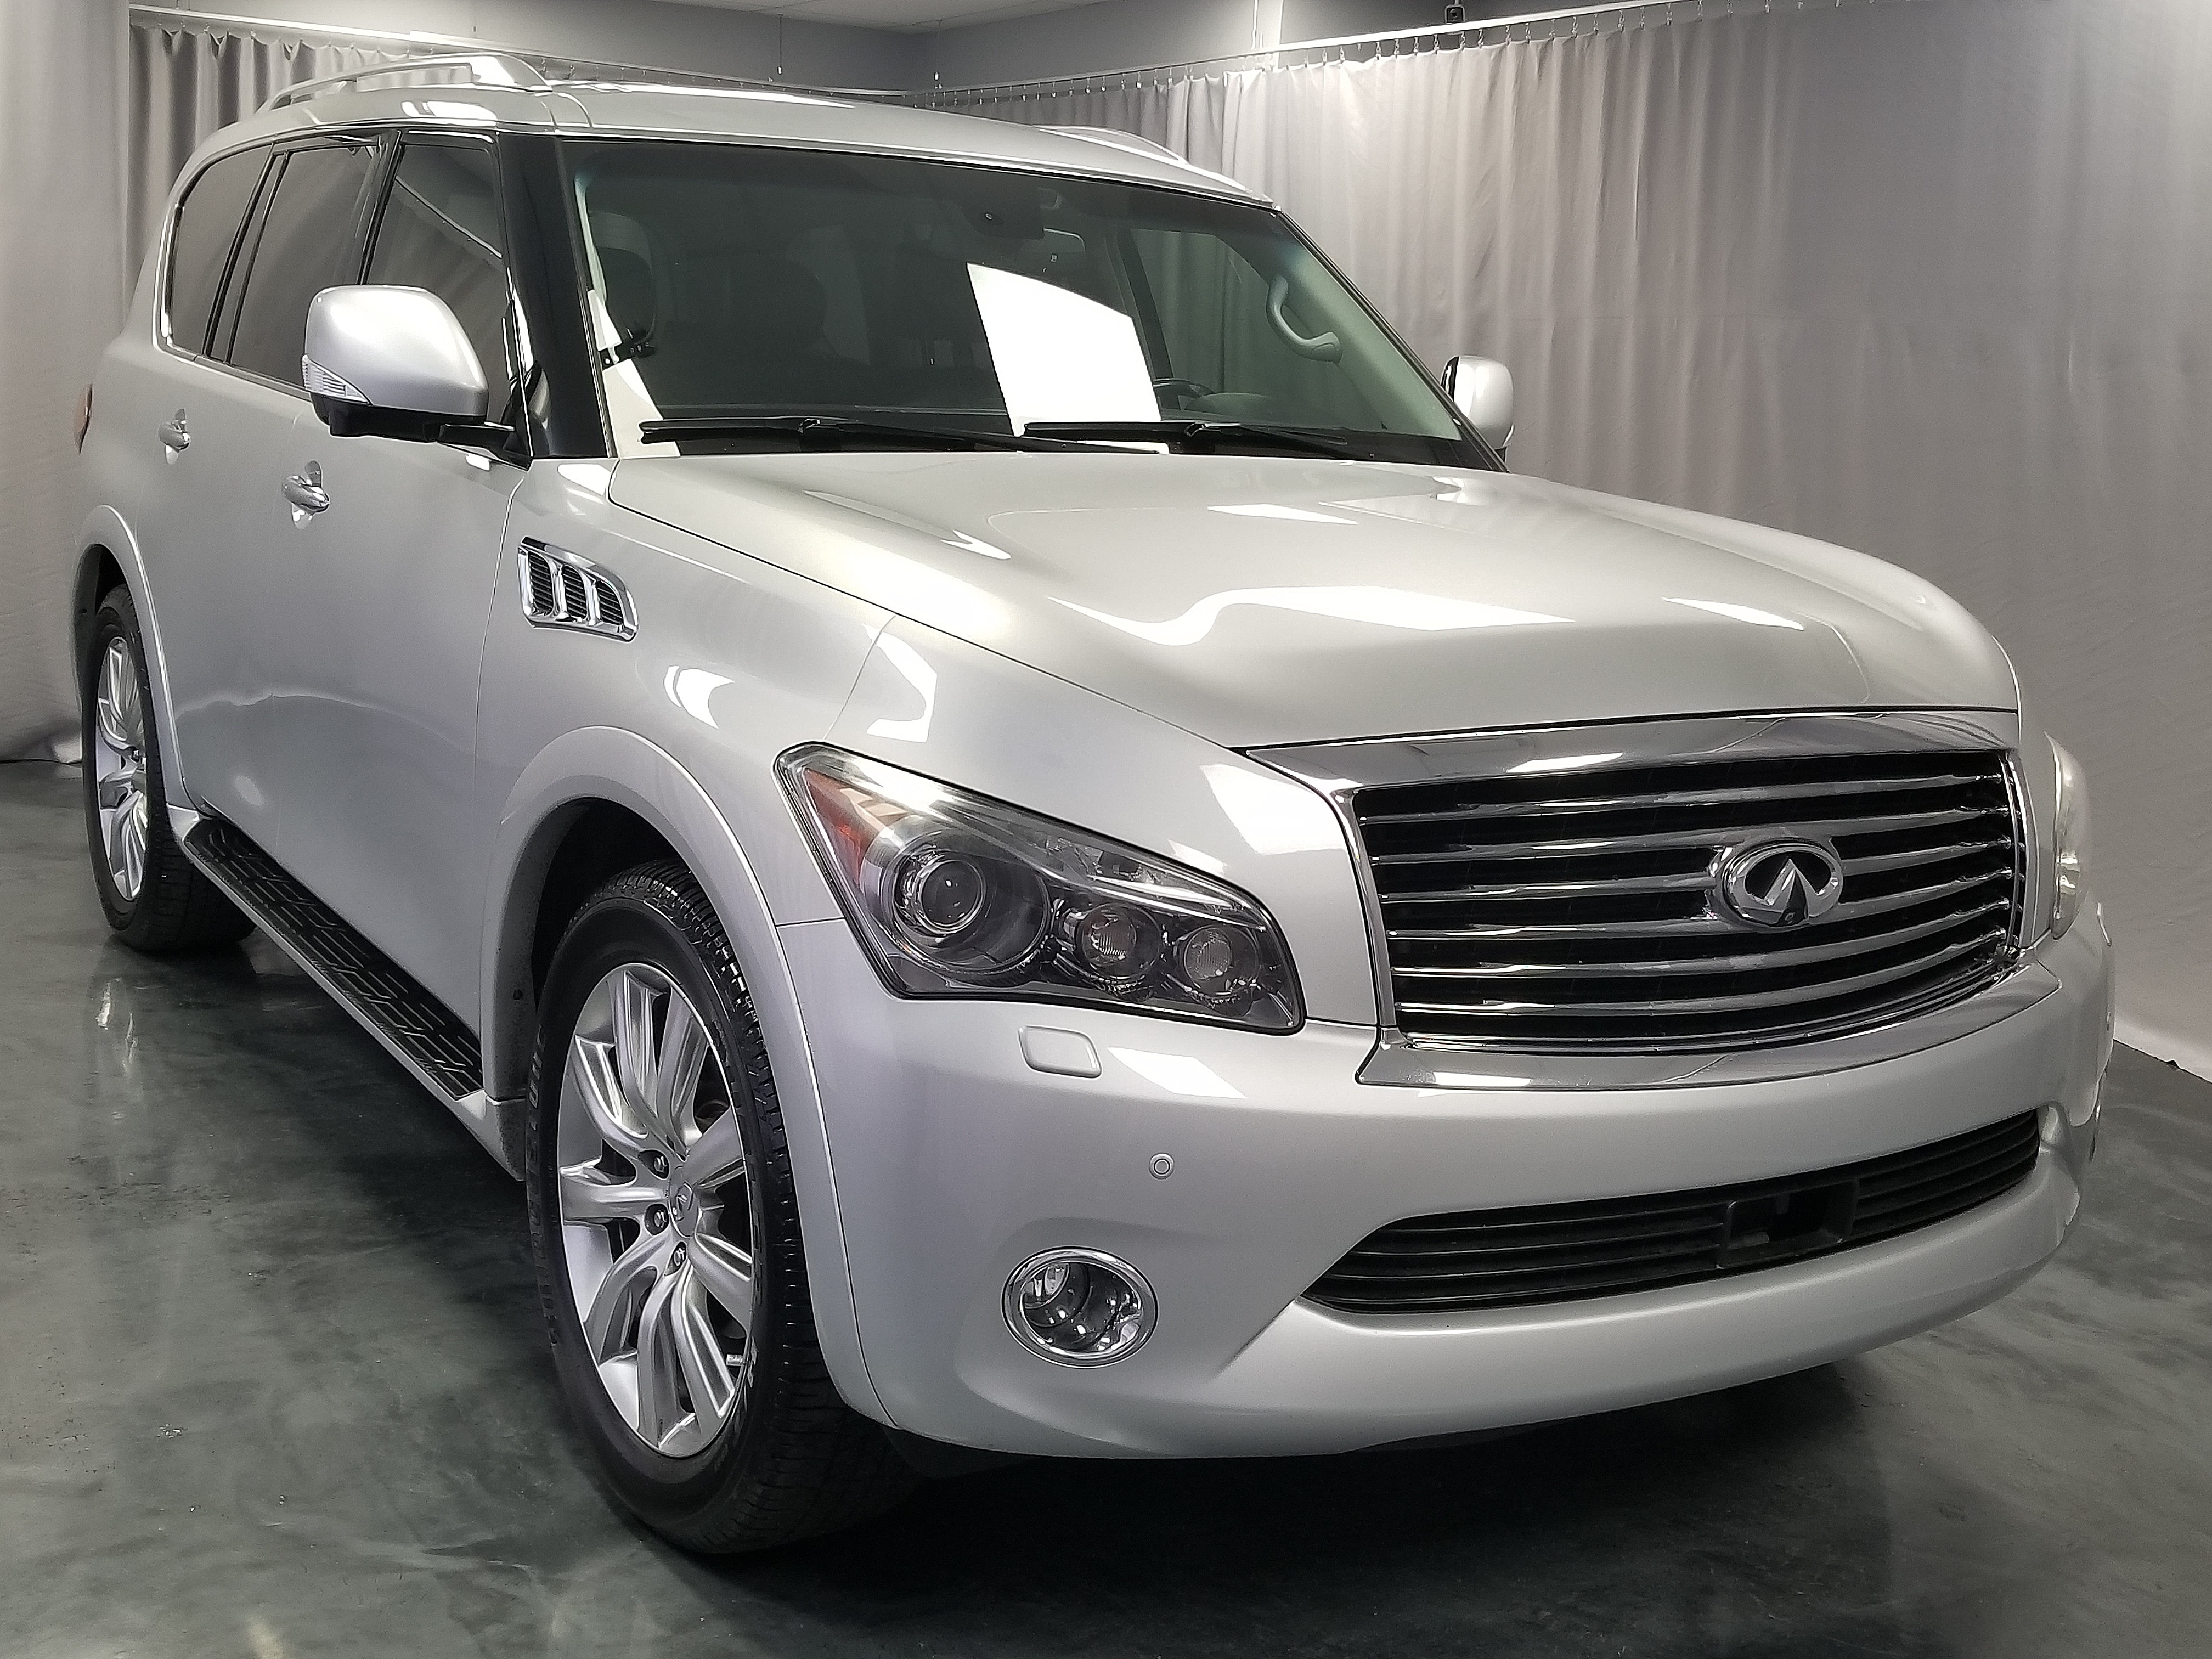 sport infiniti gianelle infinity with rover vehicle cancun wheels blog week range ending customers sale april gallery for american